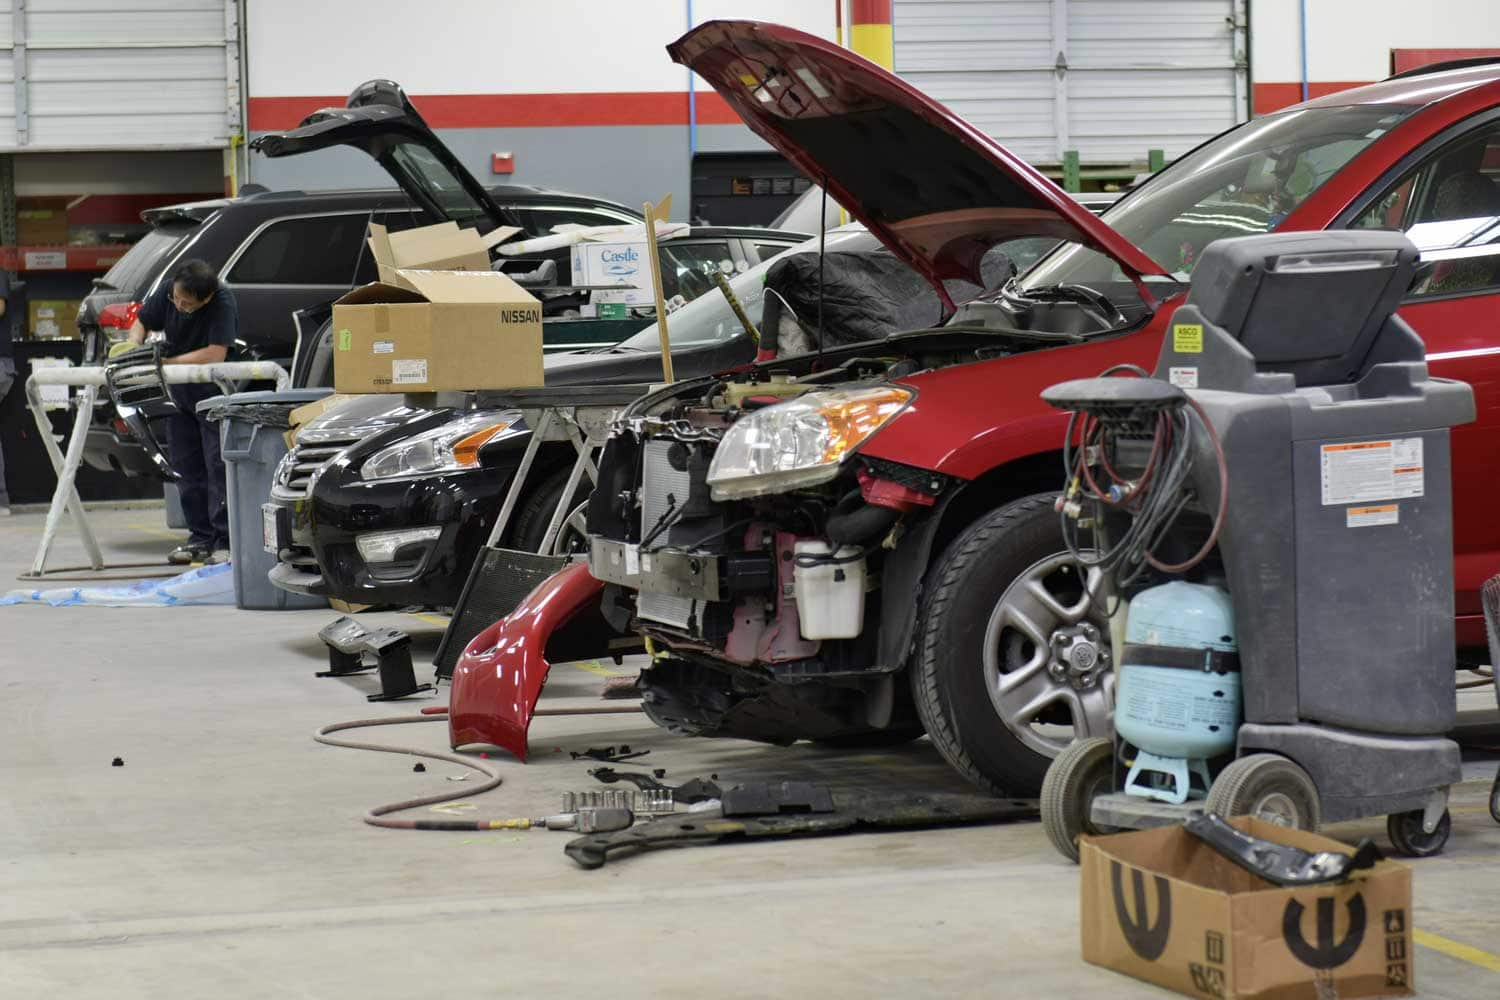 collision center auto collision center marlow heights md darcars chrysler dodge jeep ram of marlow heights darcars chrysler dodge jeep ram